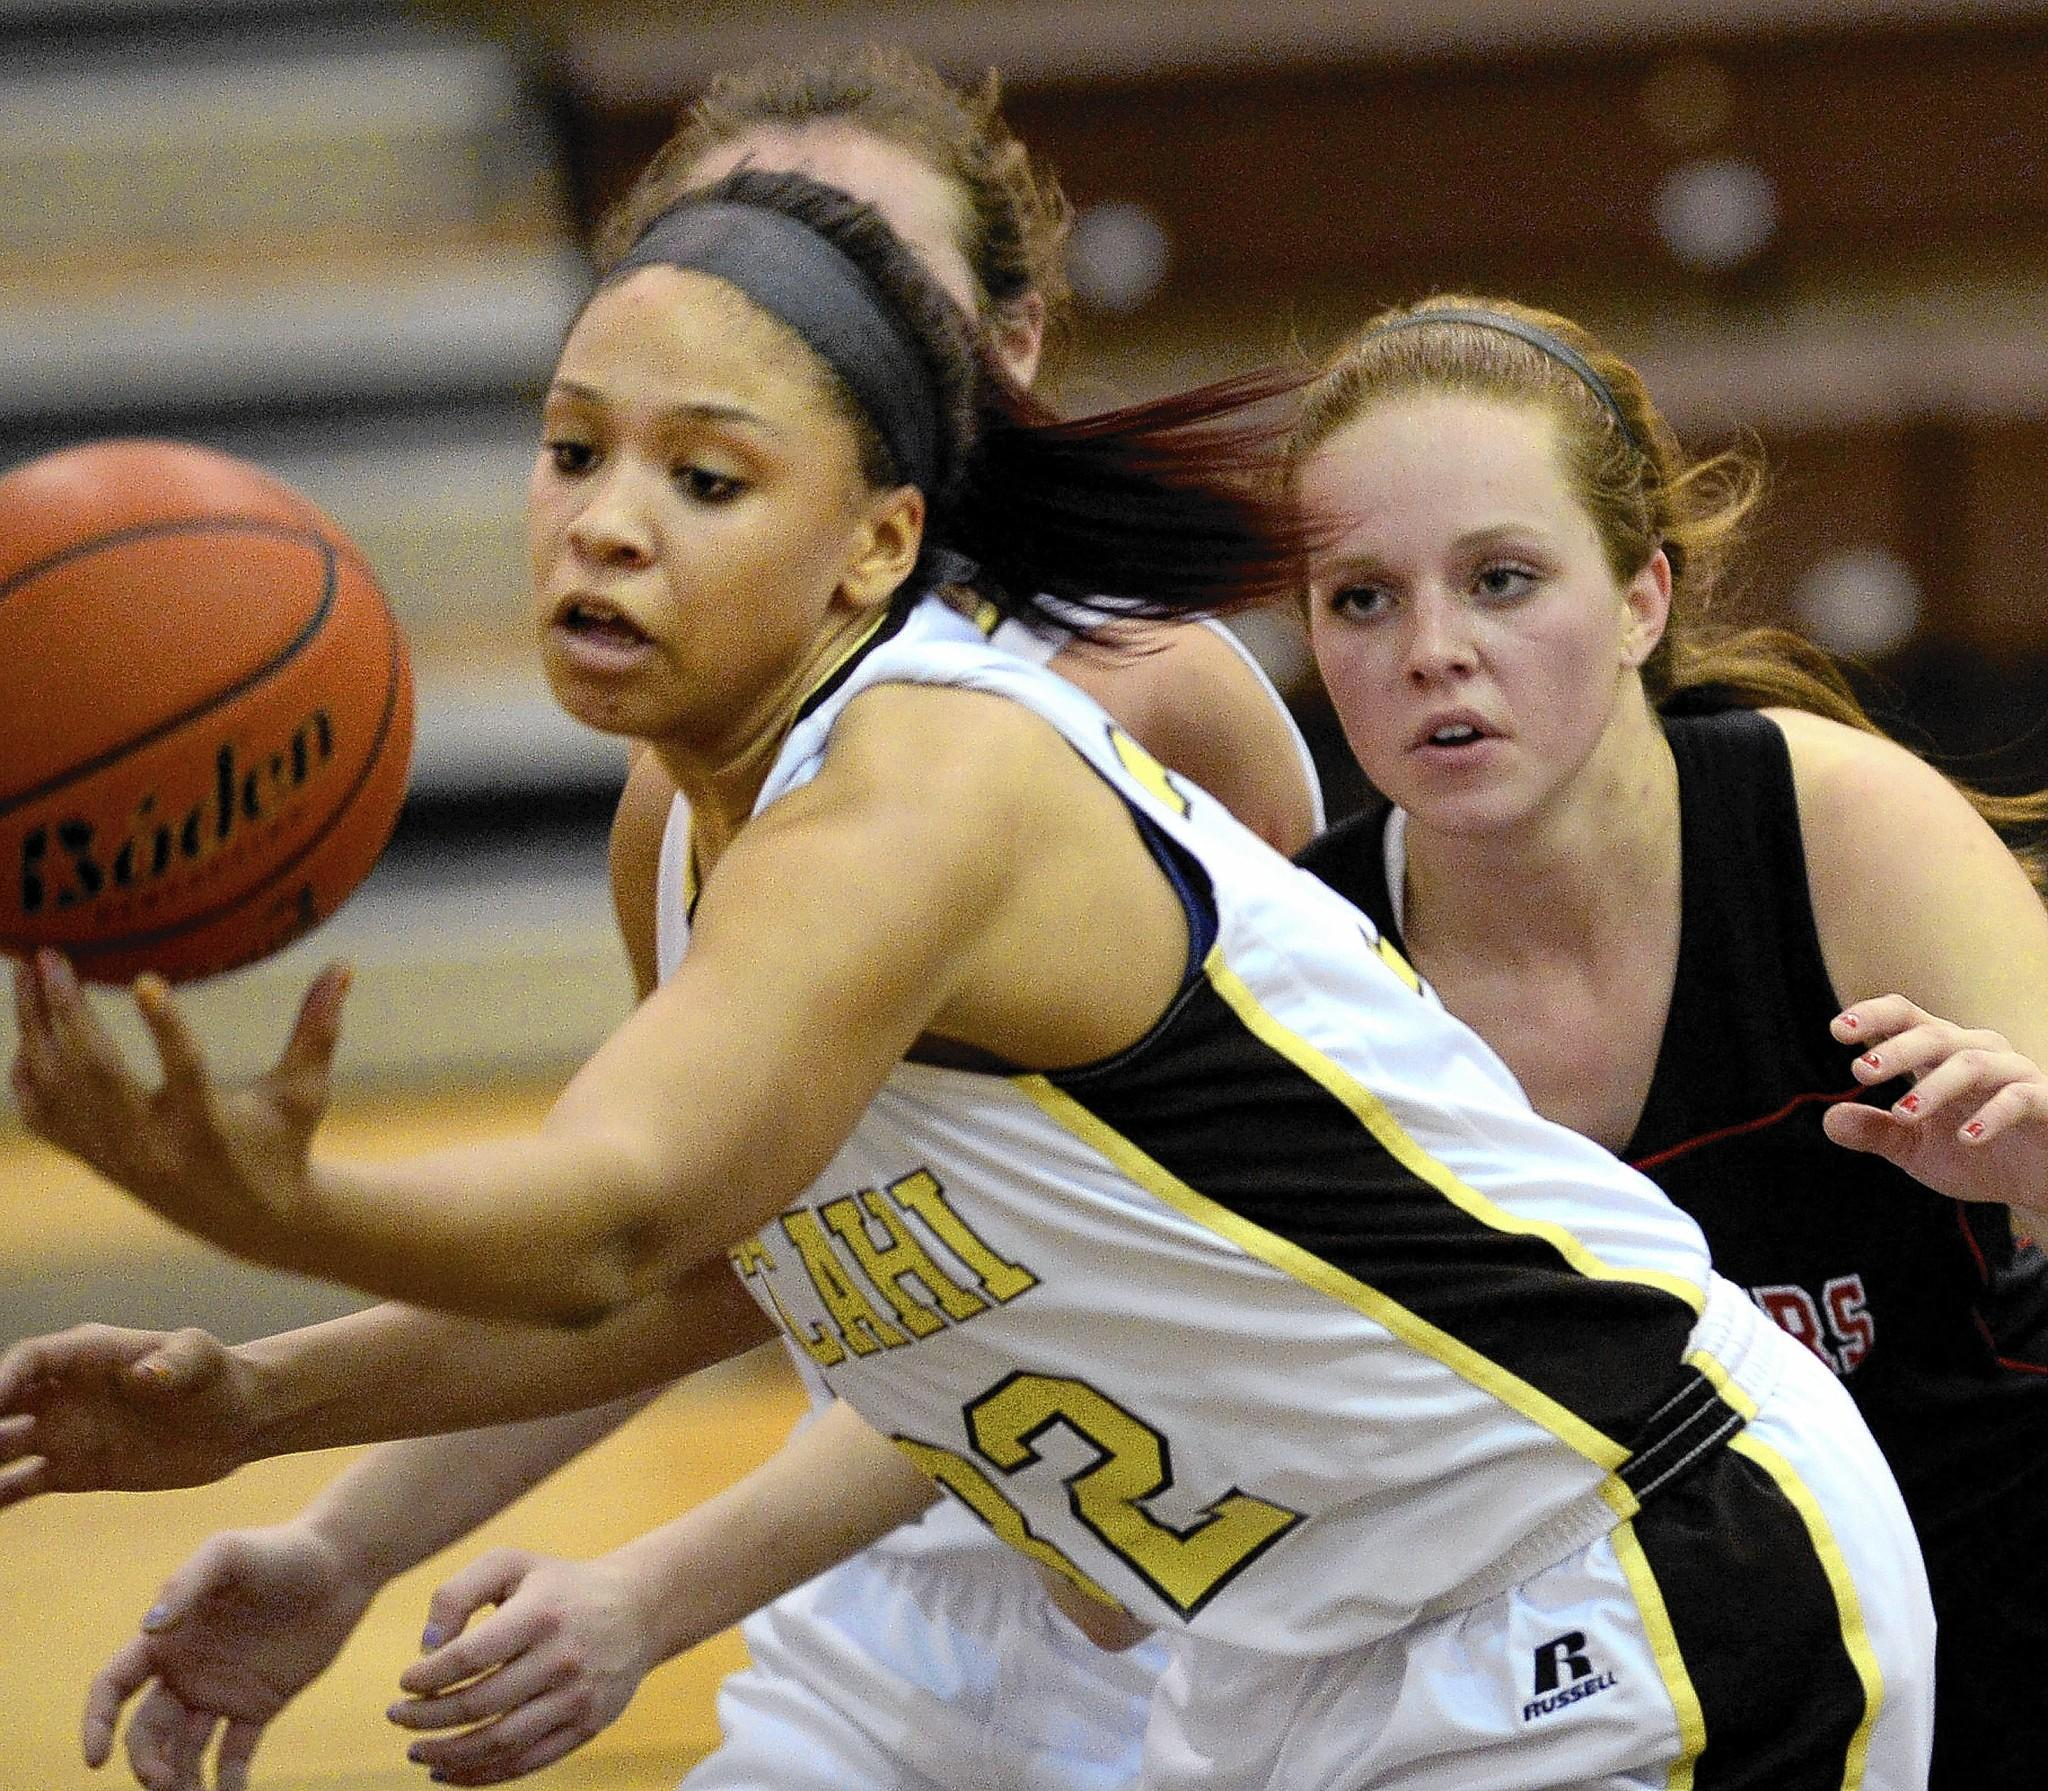 Bethlehem Catholic's Kalista Walters (left) has position on Saucon Valley's Bridget Gilmore during the District 11 Class 3A quarterfinals at Catasauqua High last Saturday.